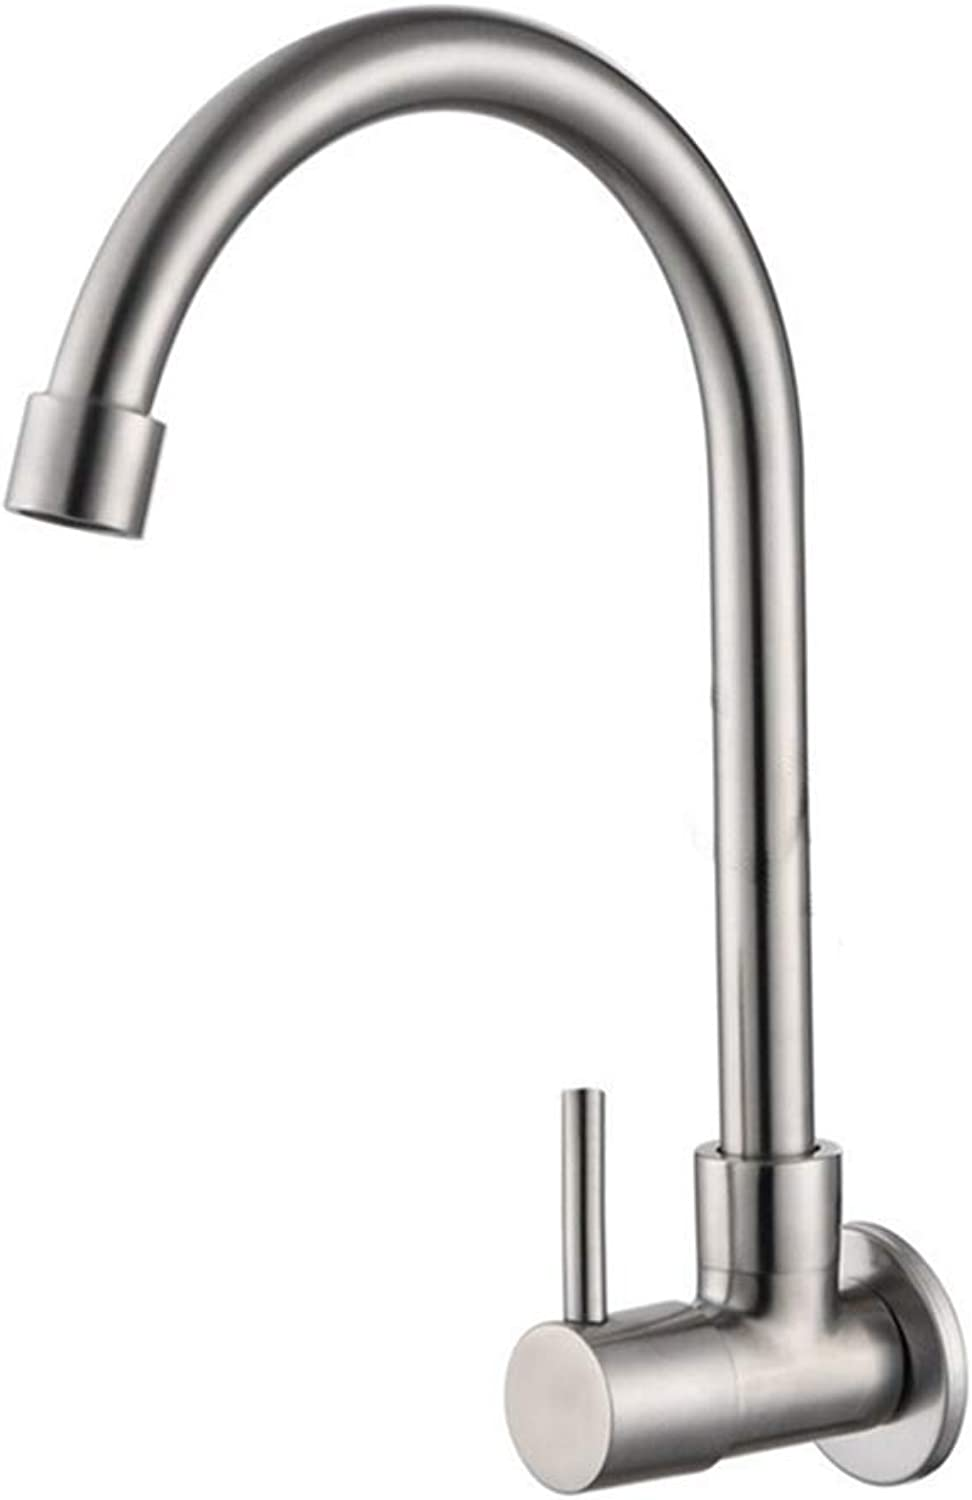 FZHLR 304 Stainless Steel Kitchen Faucet Unleaded Single Cold Water Taps Concealed to Wall Faucet Swing Control